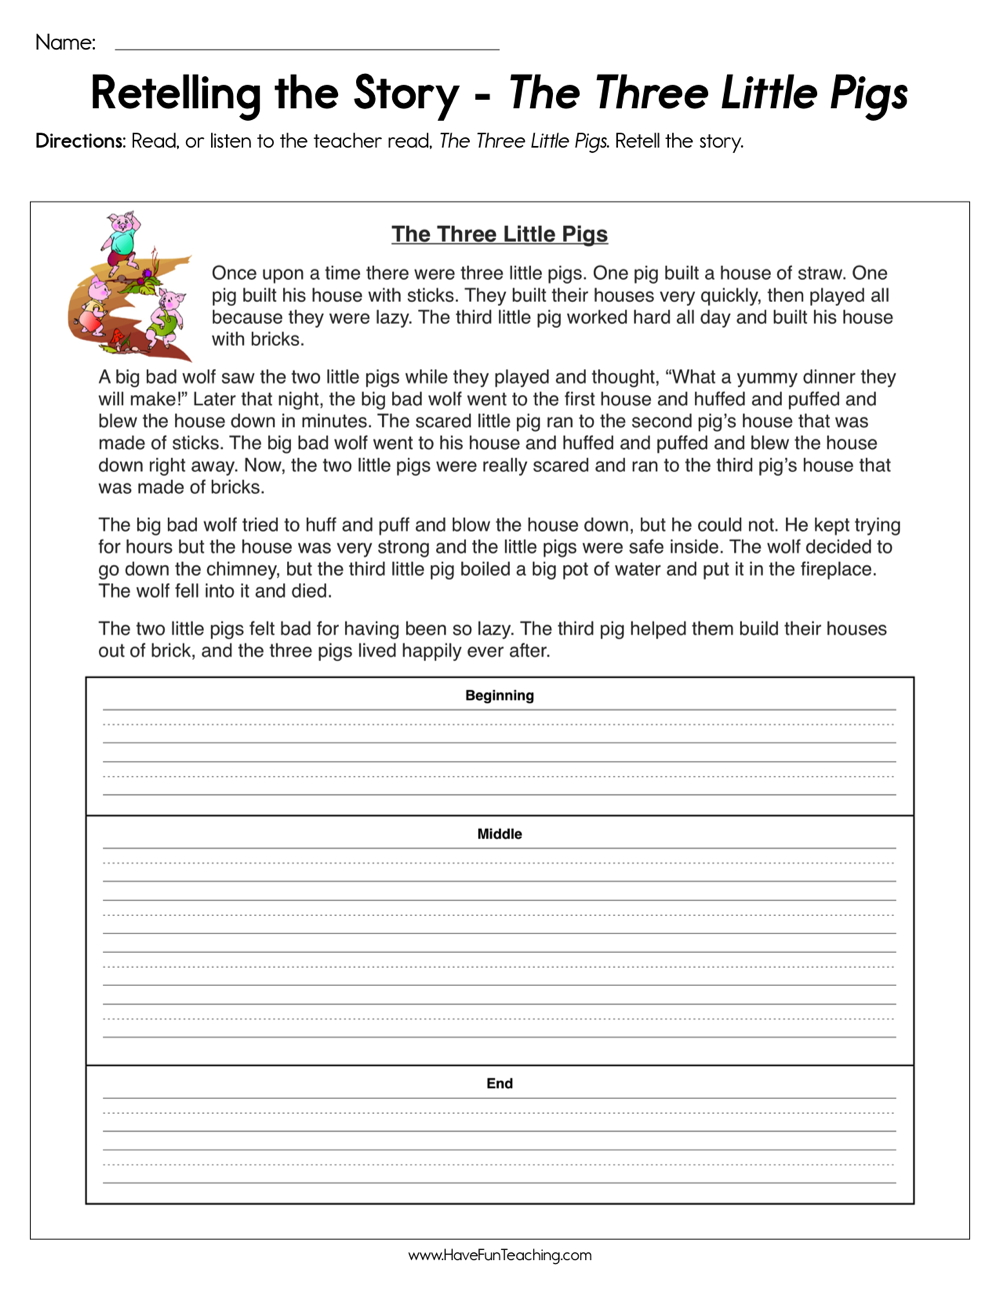 photograph regarding Three Little Pigs Printable Story identify Retelling the Tale The 3 Minor Pigs Worksheet Consist of Enjoyment